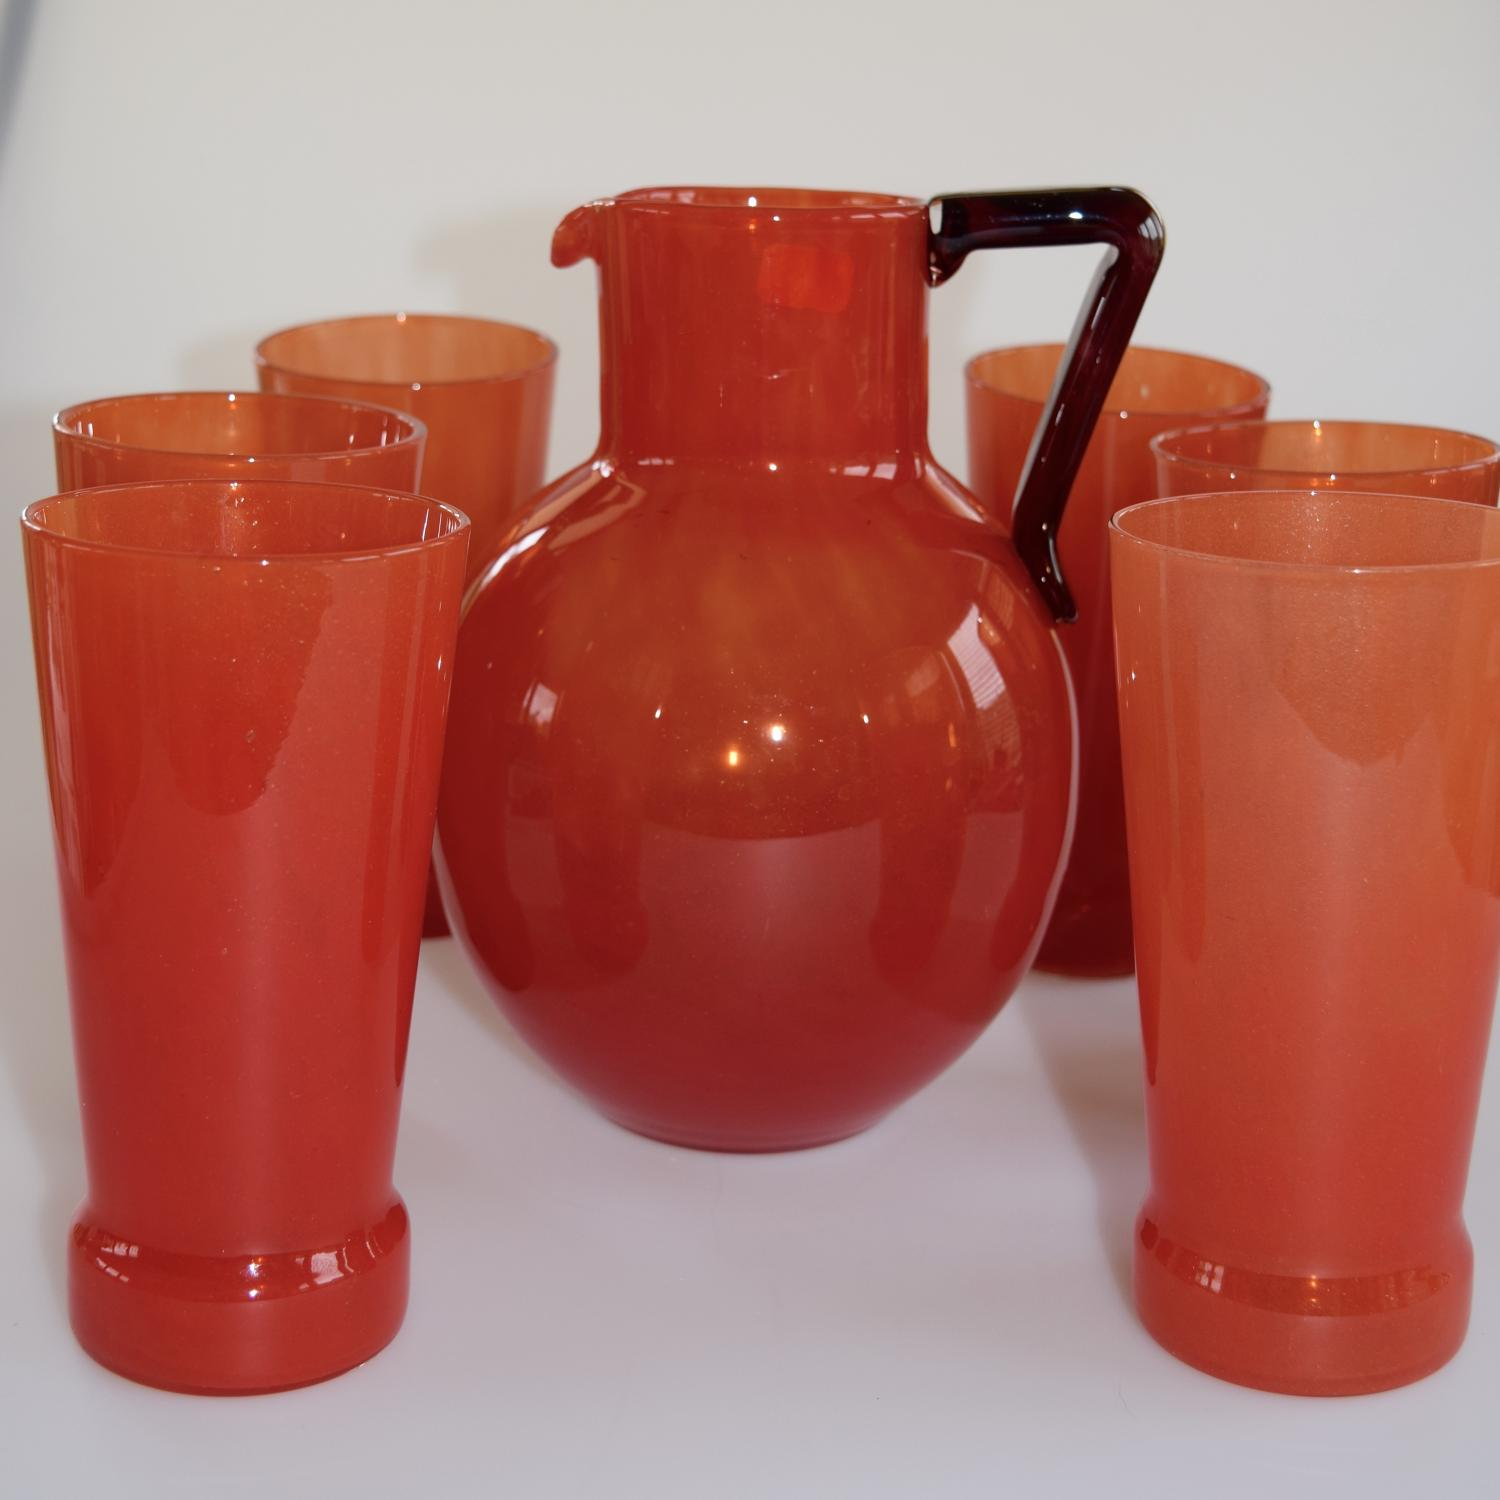 Jug and 6 glasses by Schneider.